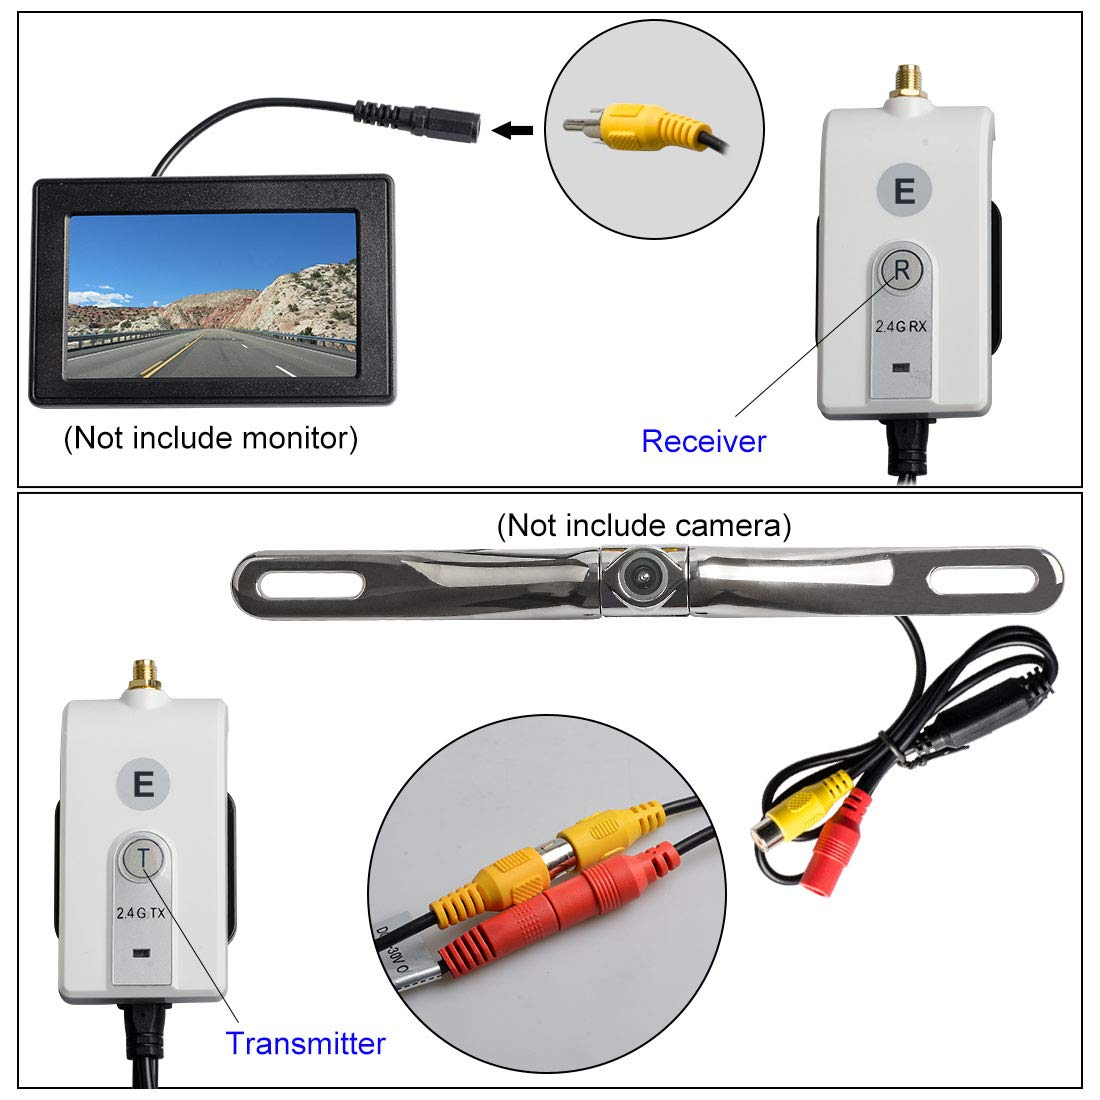 Backup Camera System Vehicle Backup Camera or Front Car Camera Rear AKK 625-2.4G-E 2.4G Wireless Video Transmitter /& Receiver Kit for Car Parking Monitor